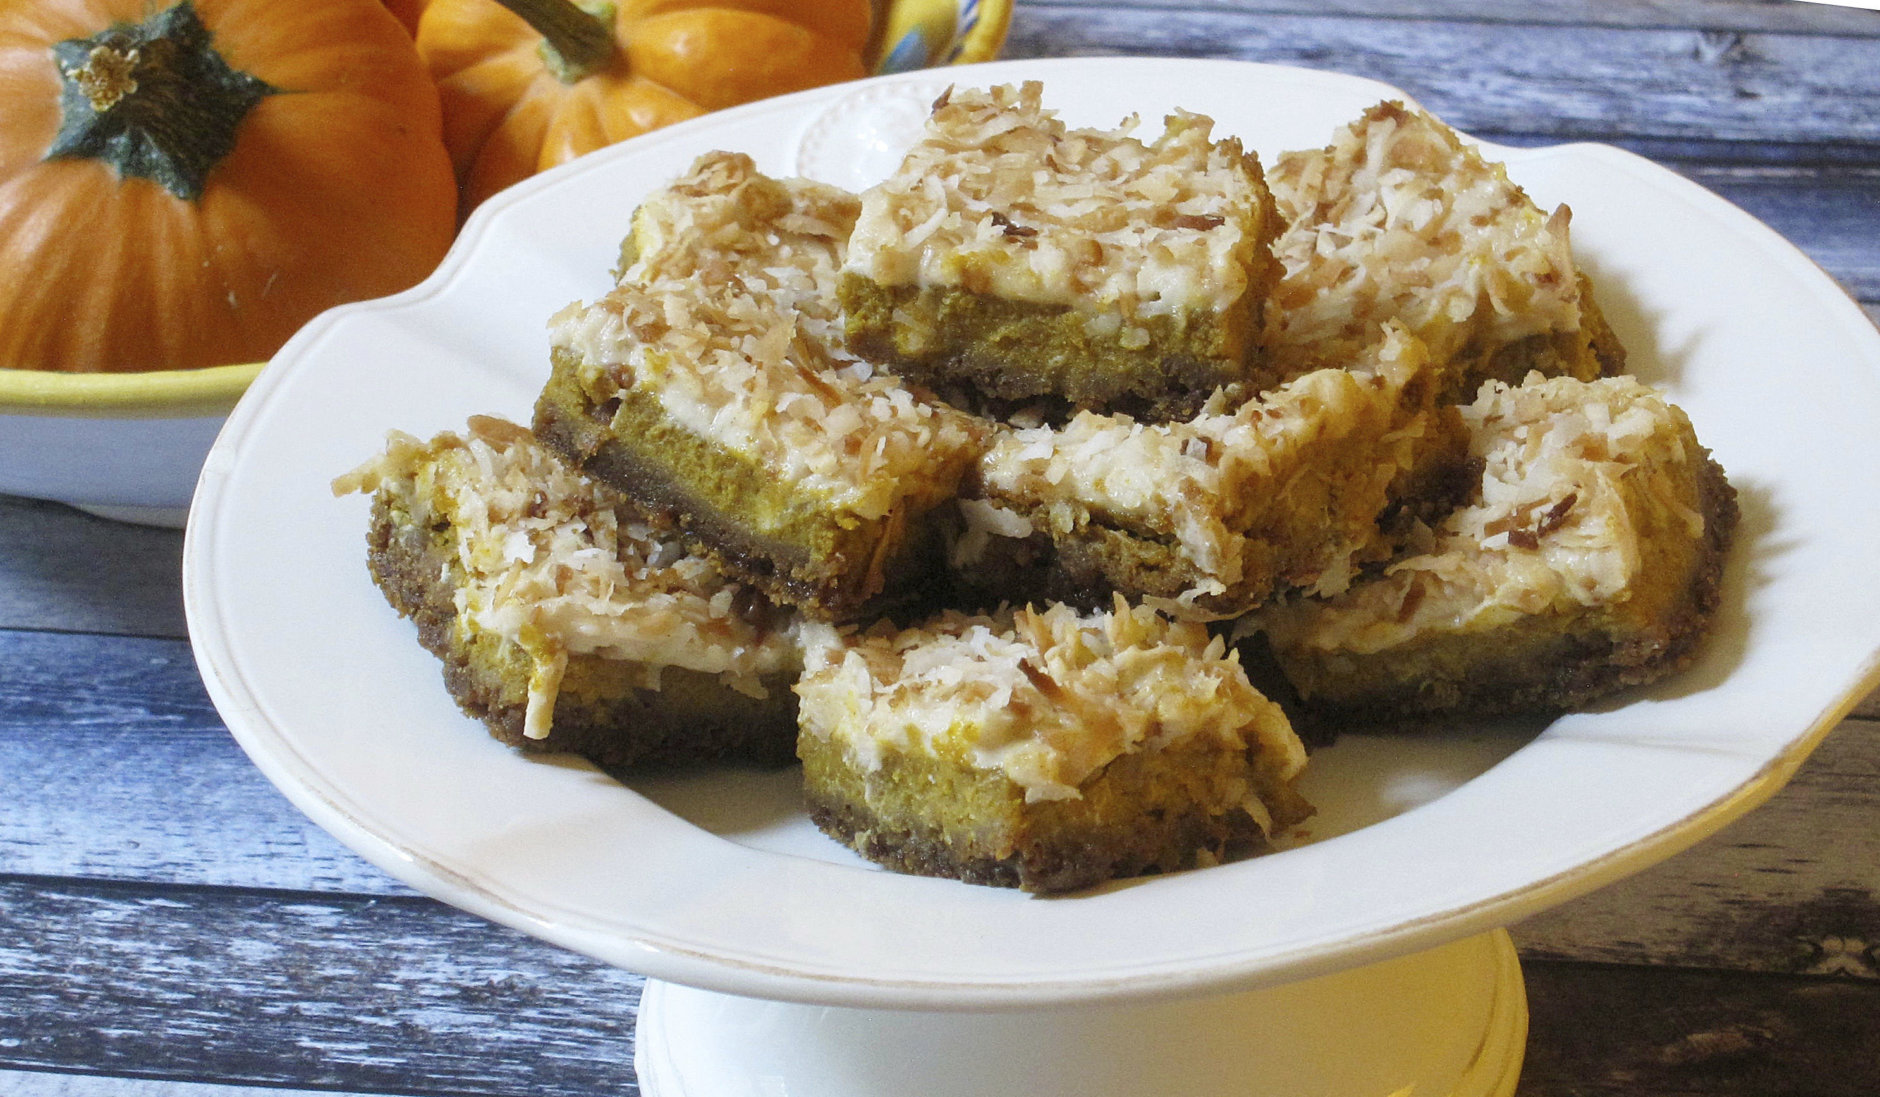 This Sept. 25, 2017 photo shows pumpkin coconut squares in New York. This dish is from a recipe by Sara Moulton. (Sara Moulton via AP)